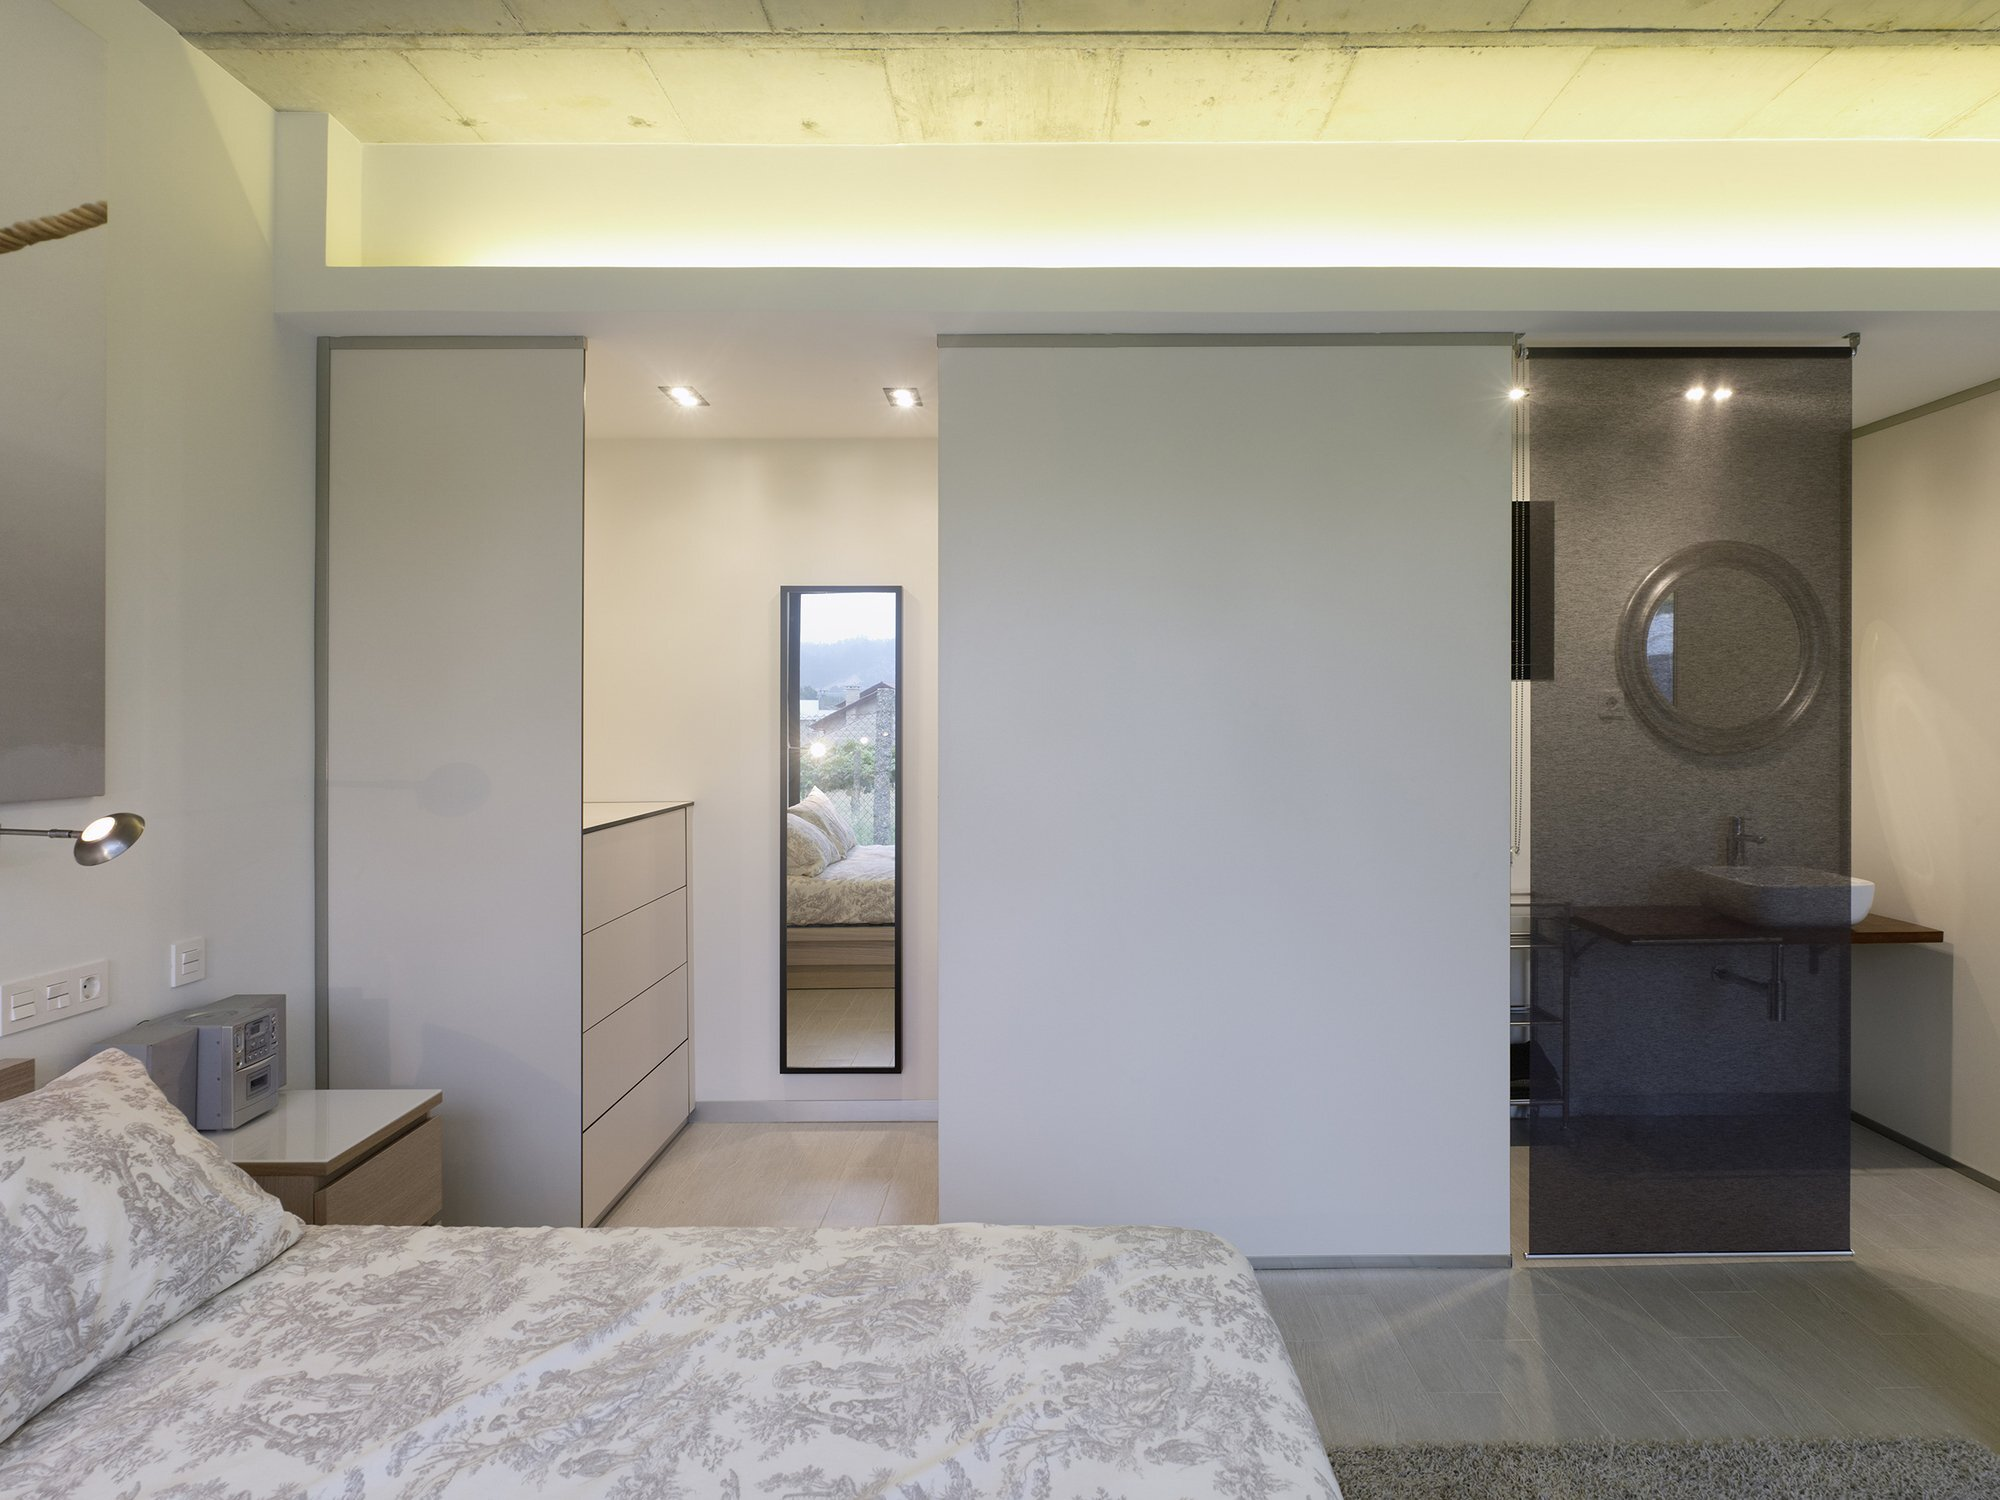 Renovación de Vivienda en Rubianes - Small House - Nan Arquitectos - Spain - Bedroom - Humble Homes